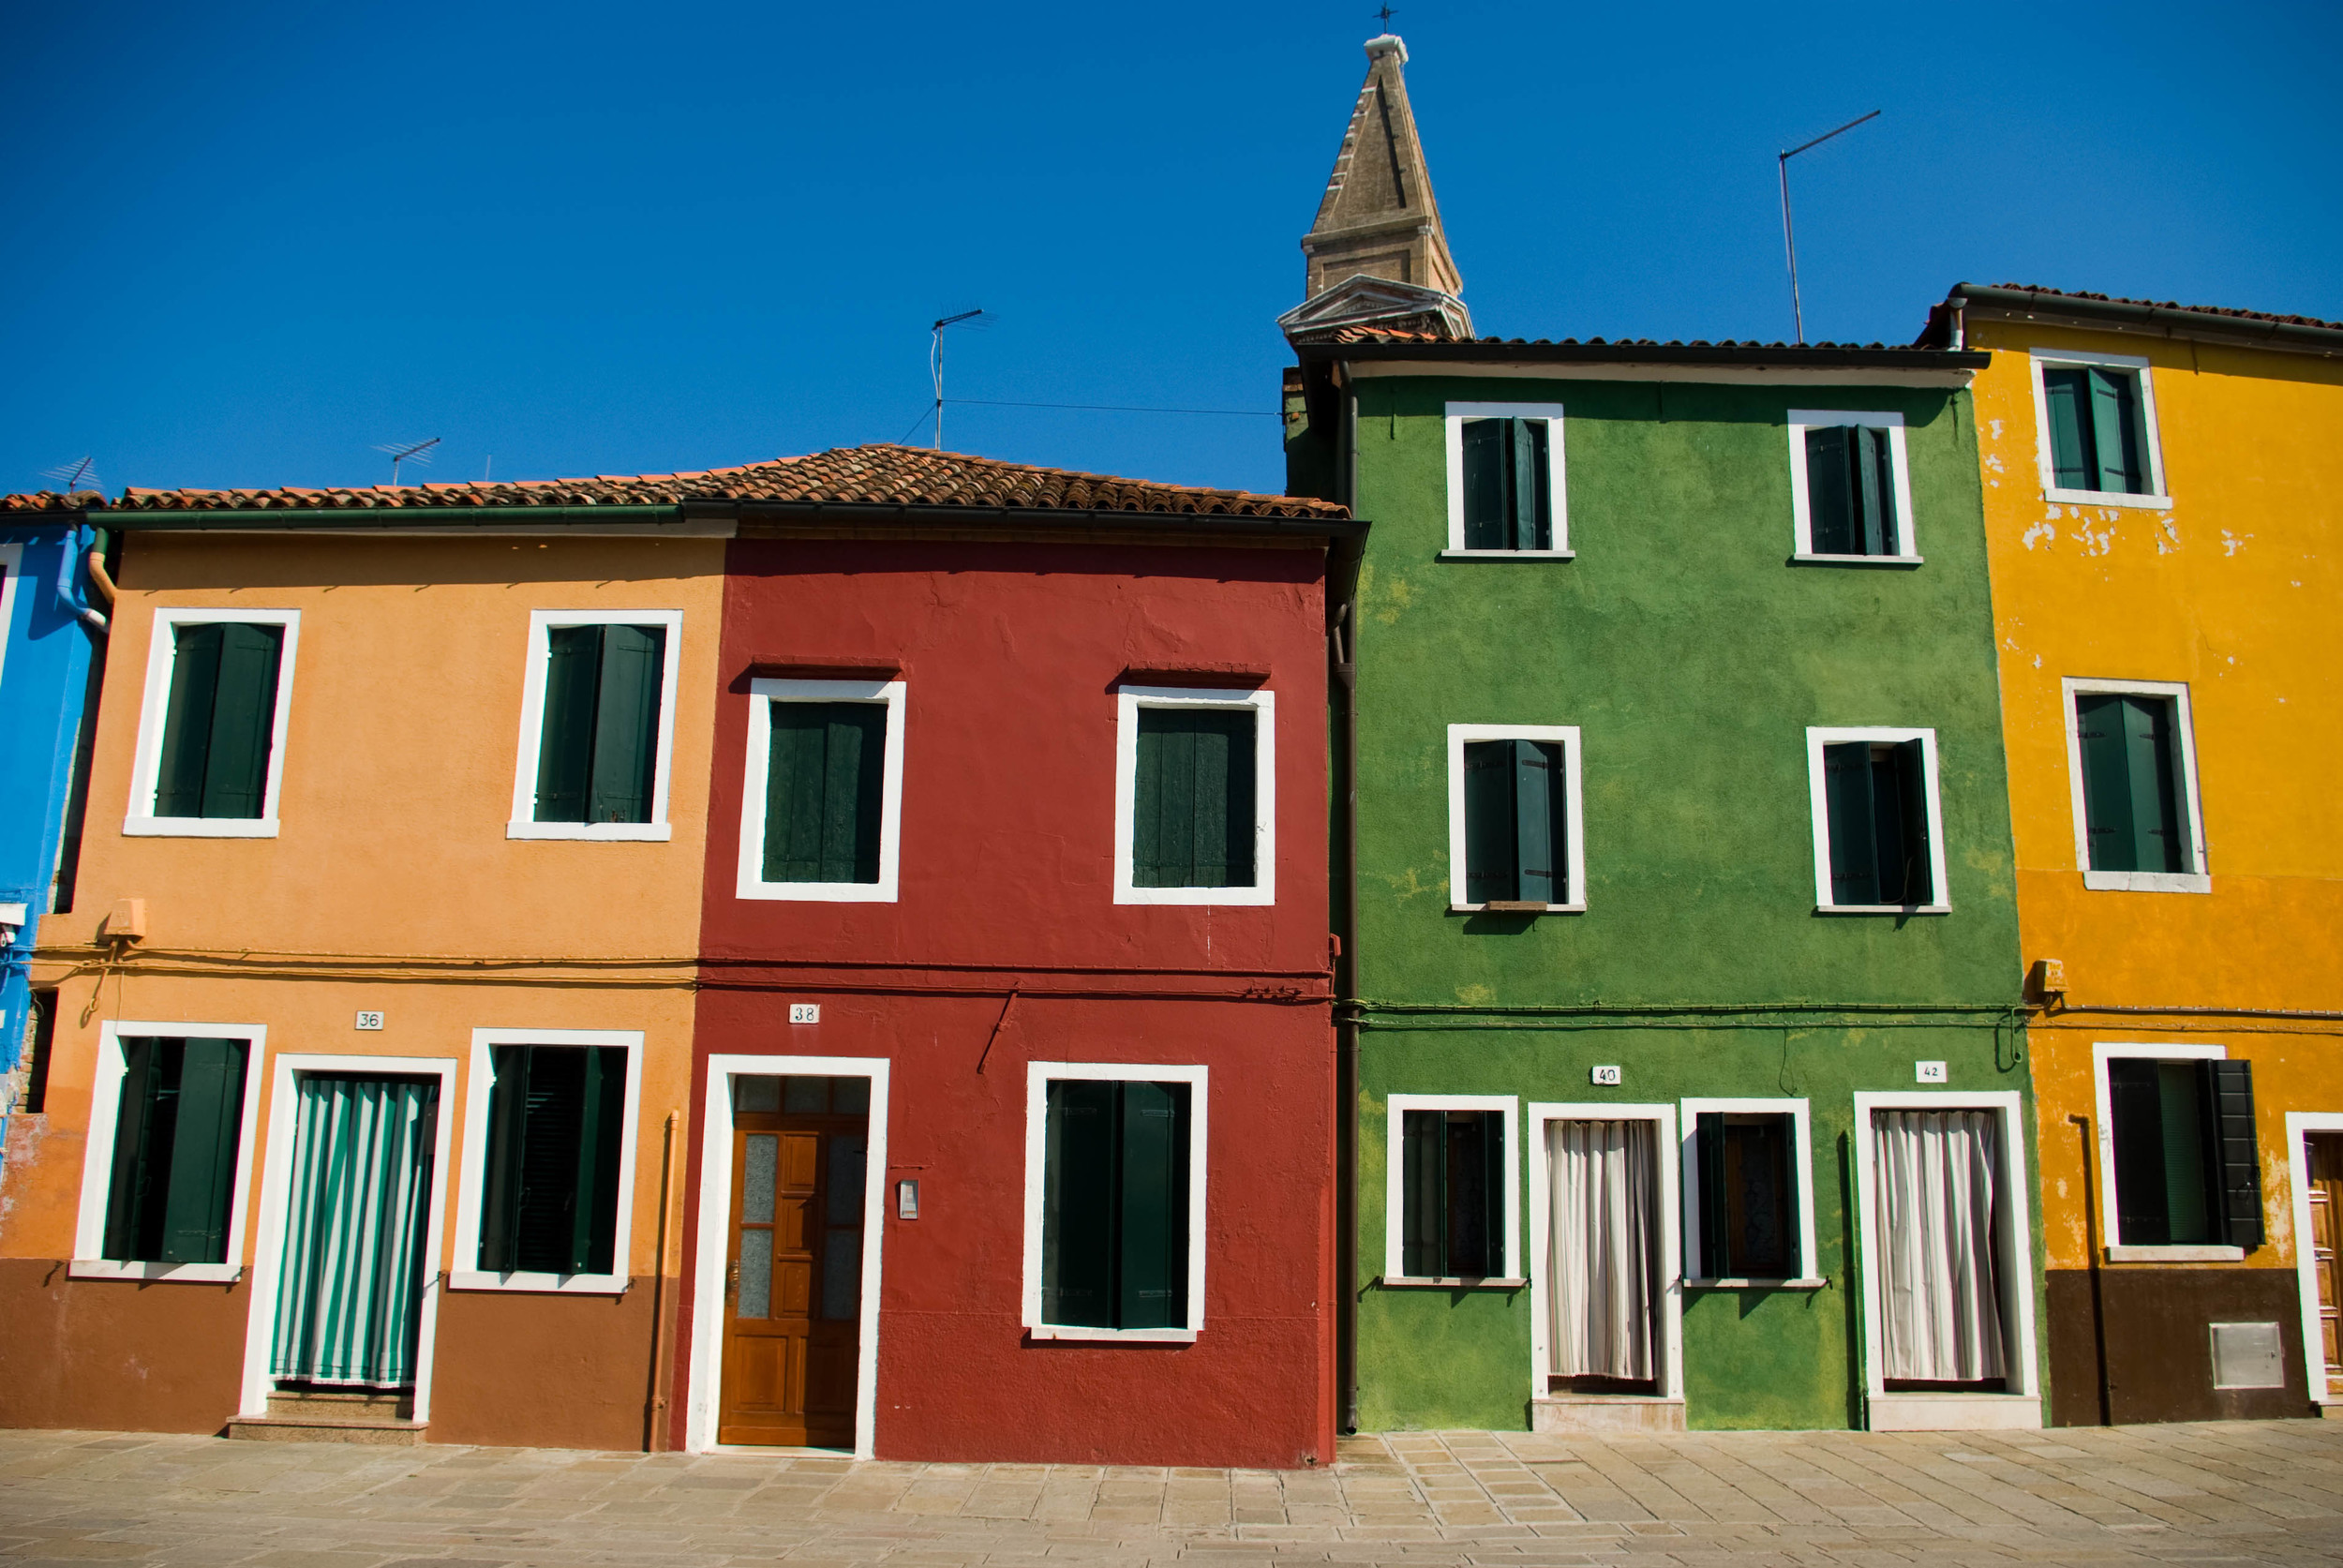 Jar_burano_4_houses.jpg